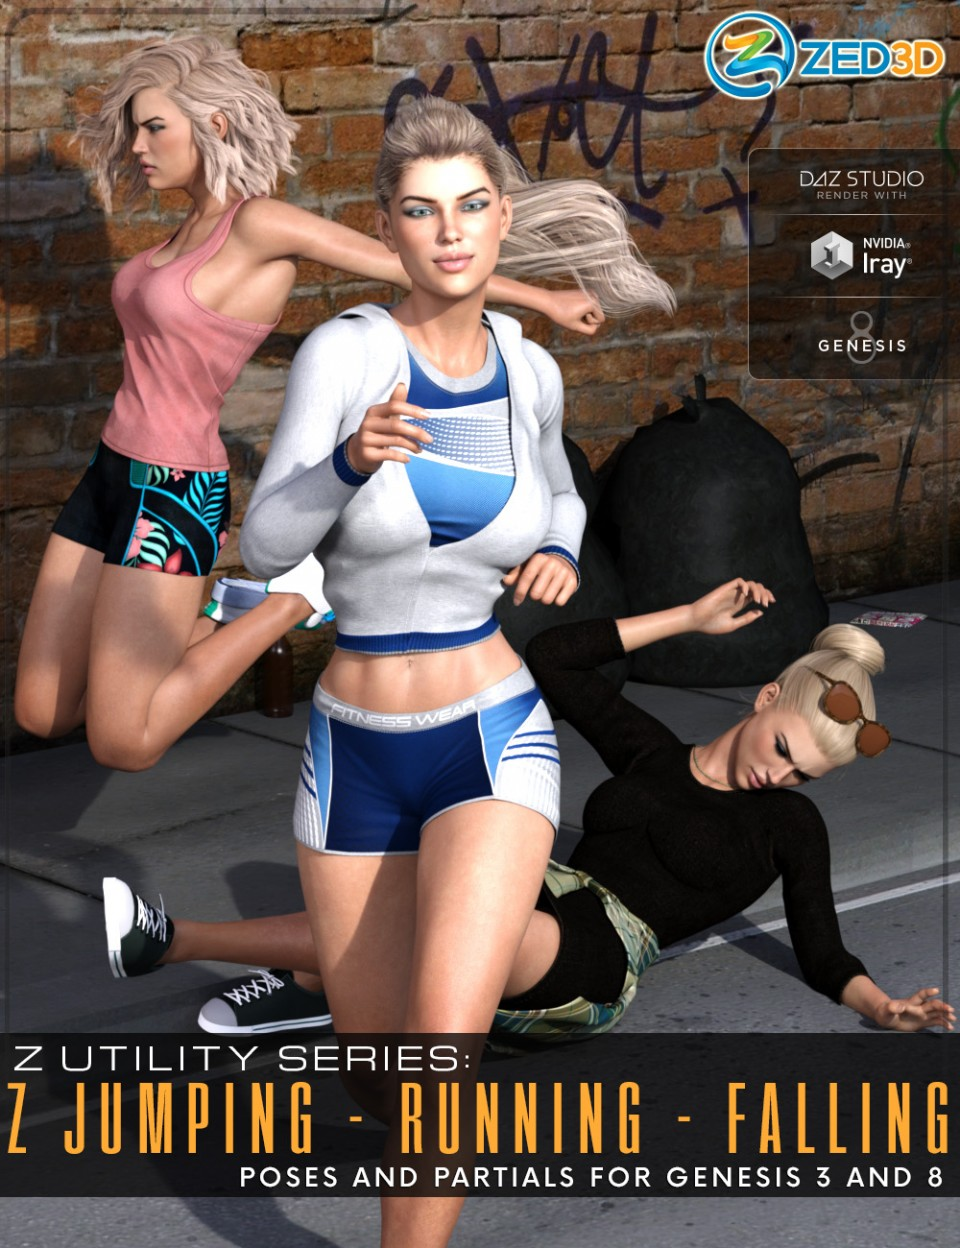 Z Utility Series: Jumping Running Falling – Poses and Partials for Genesis 3 and 8_DAZ3D下载站